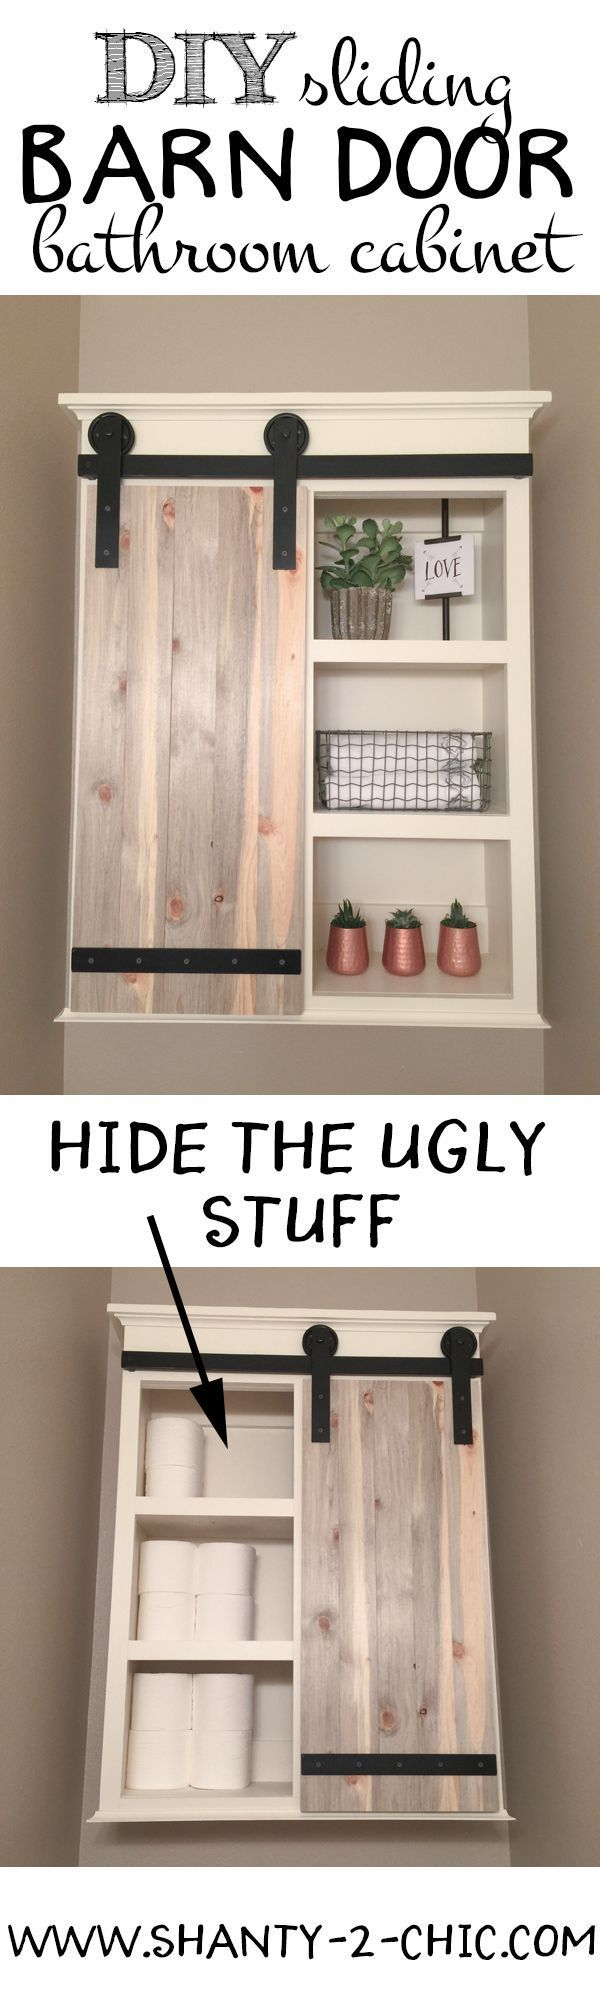 Build a custom Sliding Barn Door Storage Cabinet! Perfect for storage toilet paper and other items you don't want to be seen but also open shelving for decorating! Free plans at www.shanty-2-chic.com